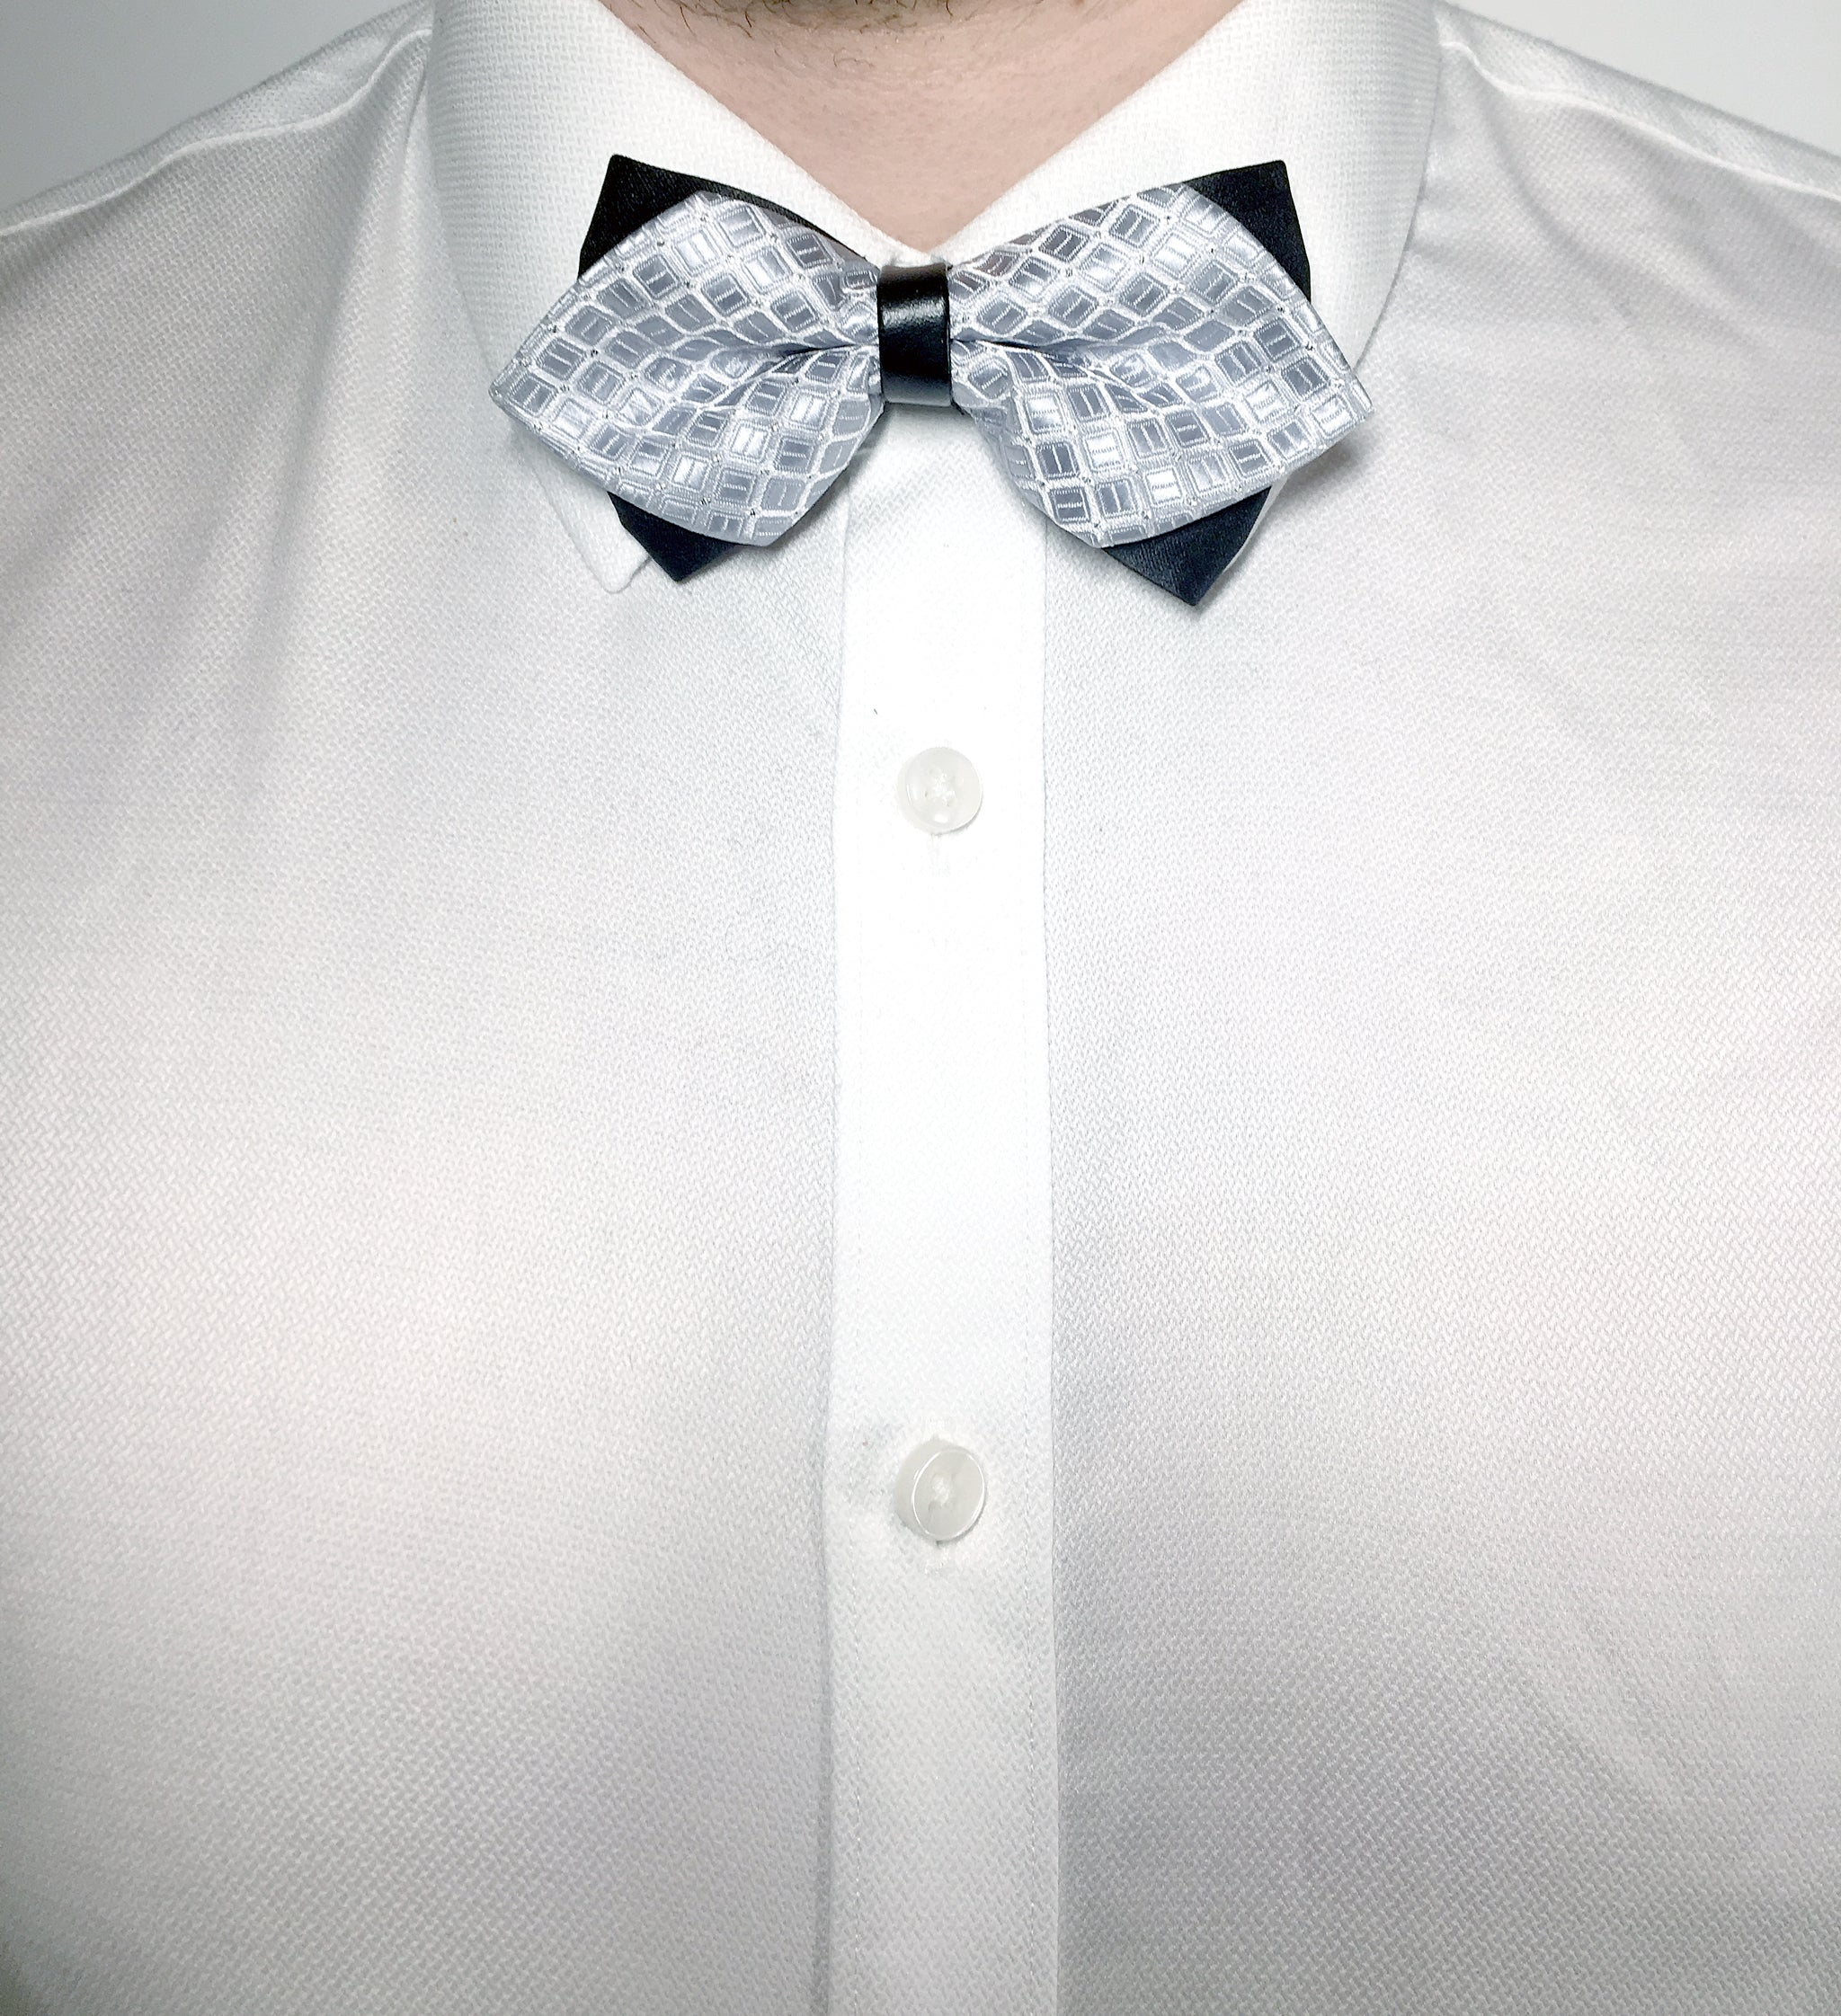 Silver diamond bow tie with geometric pattern | The Perfect Gentleman